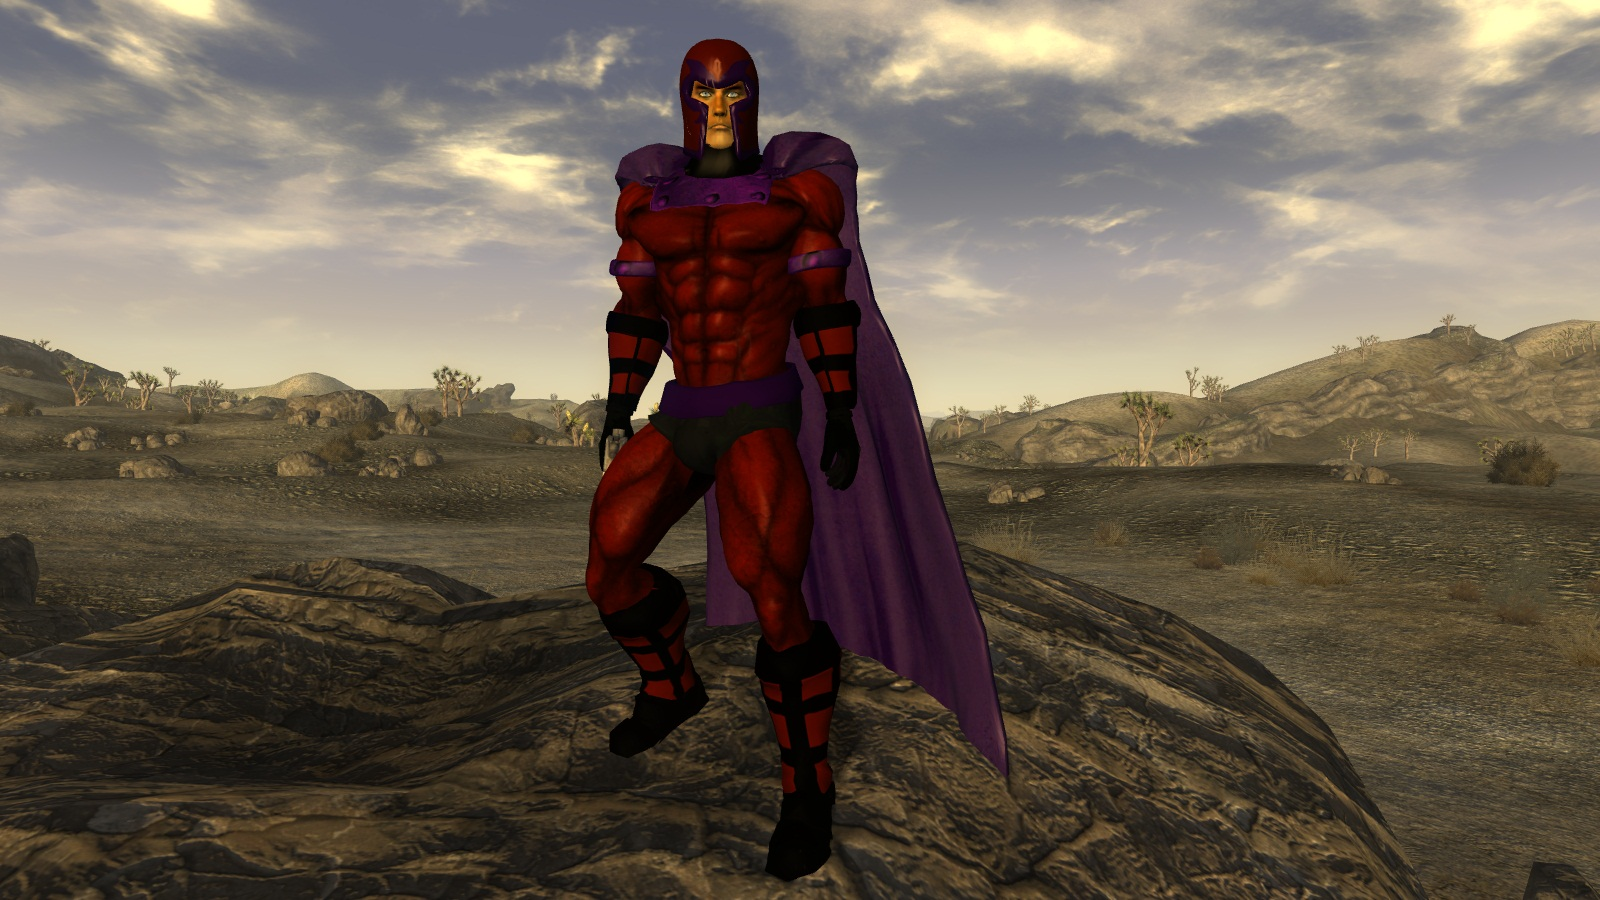 Superhero costumes at Fallout New Vegas - mods and community